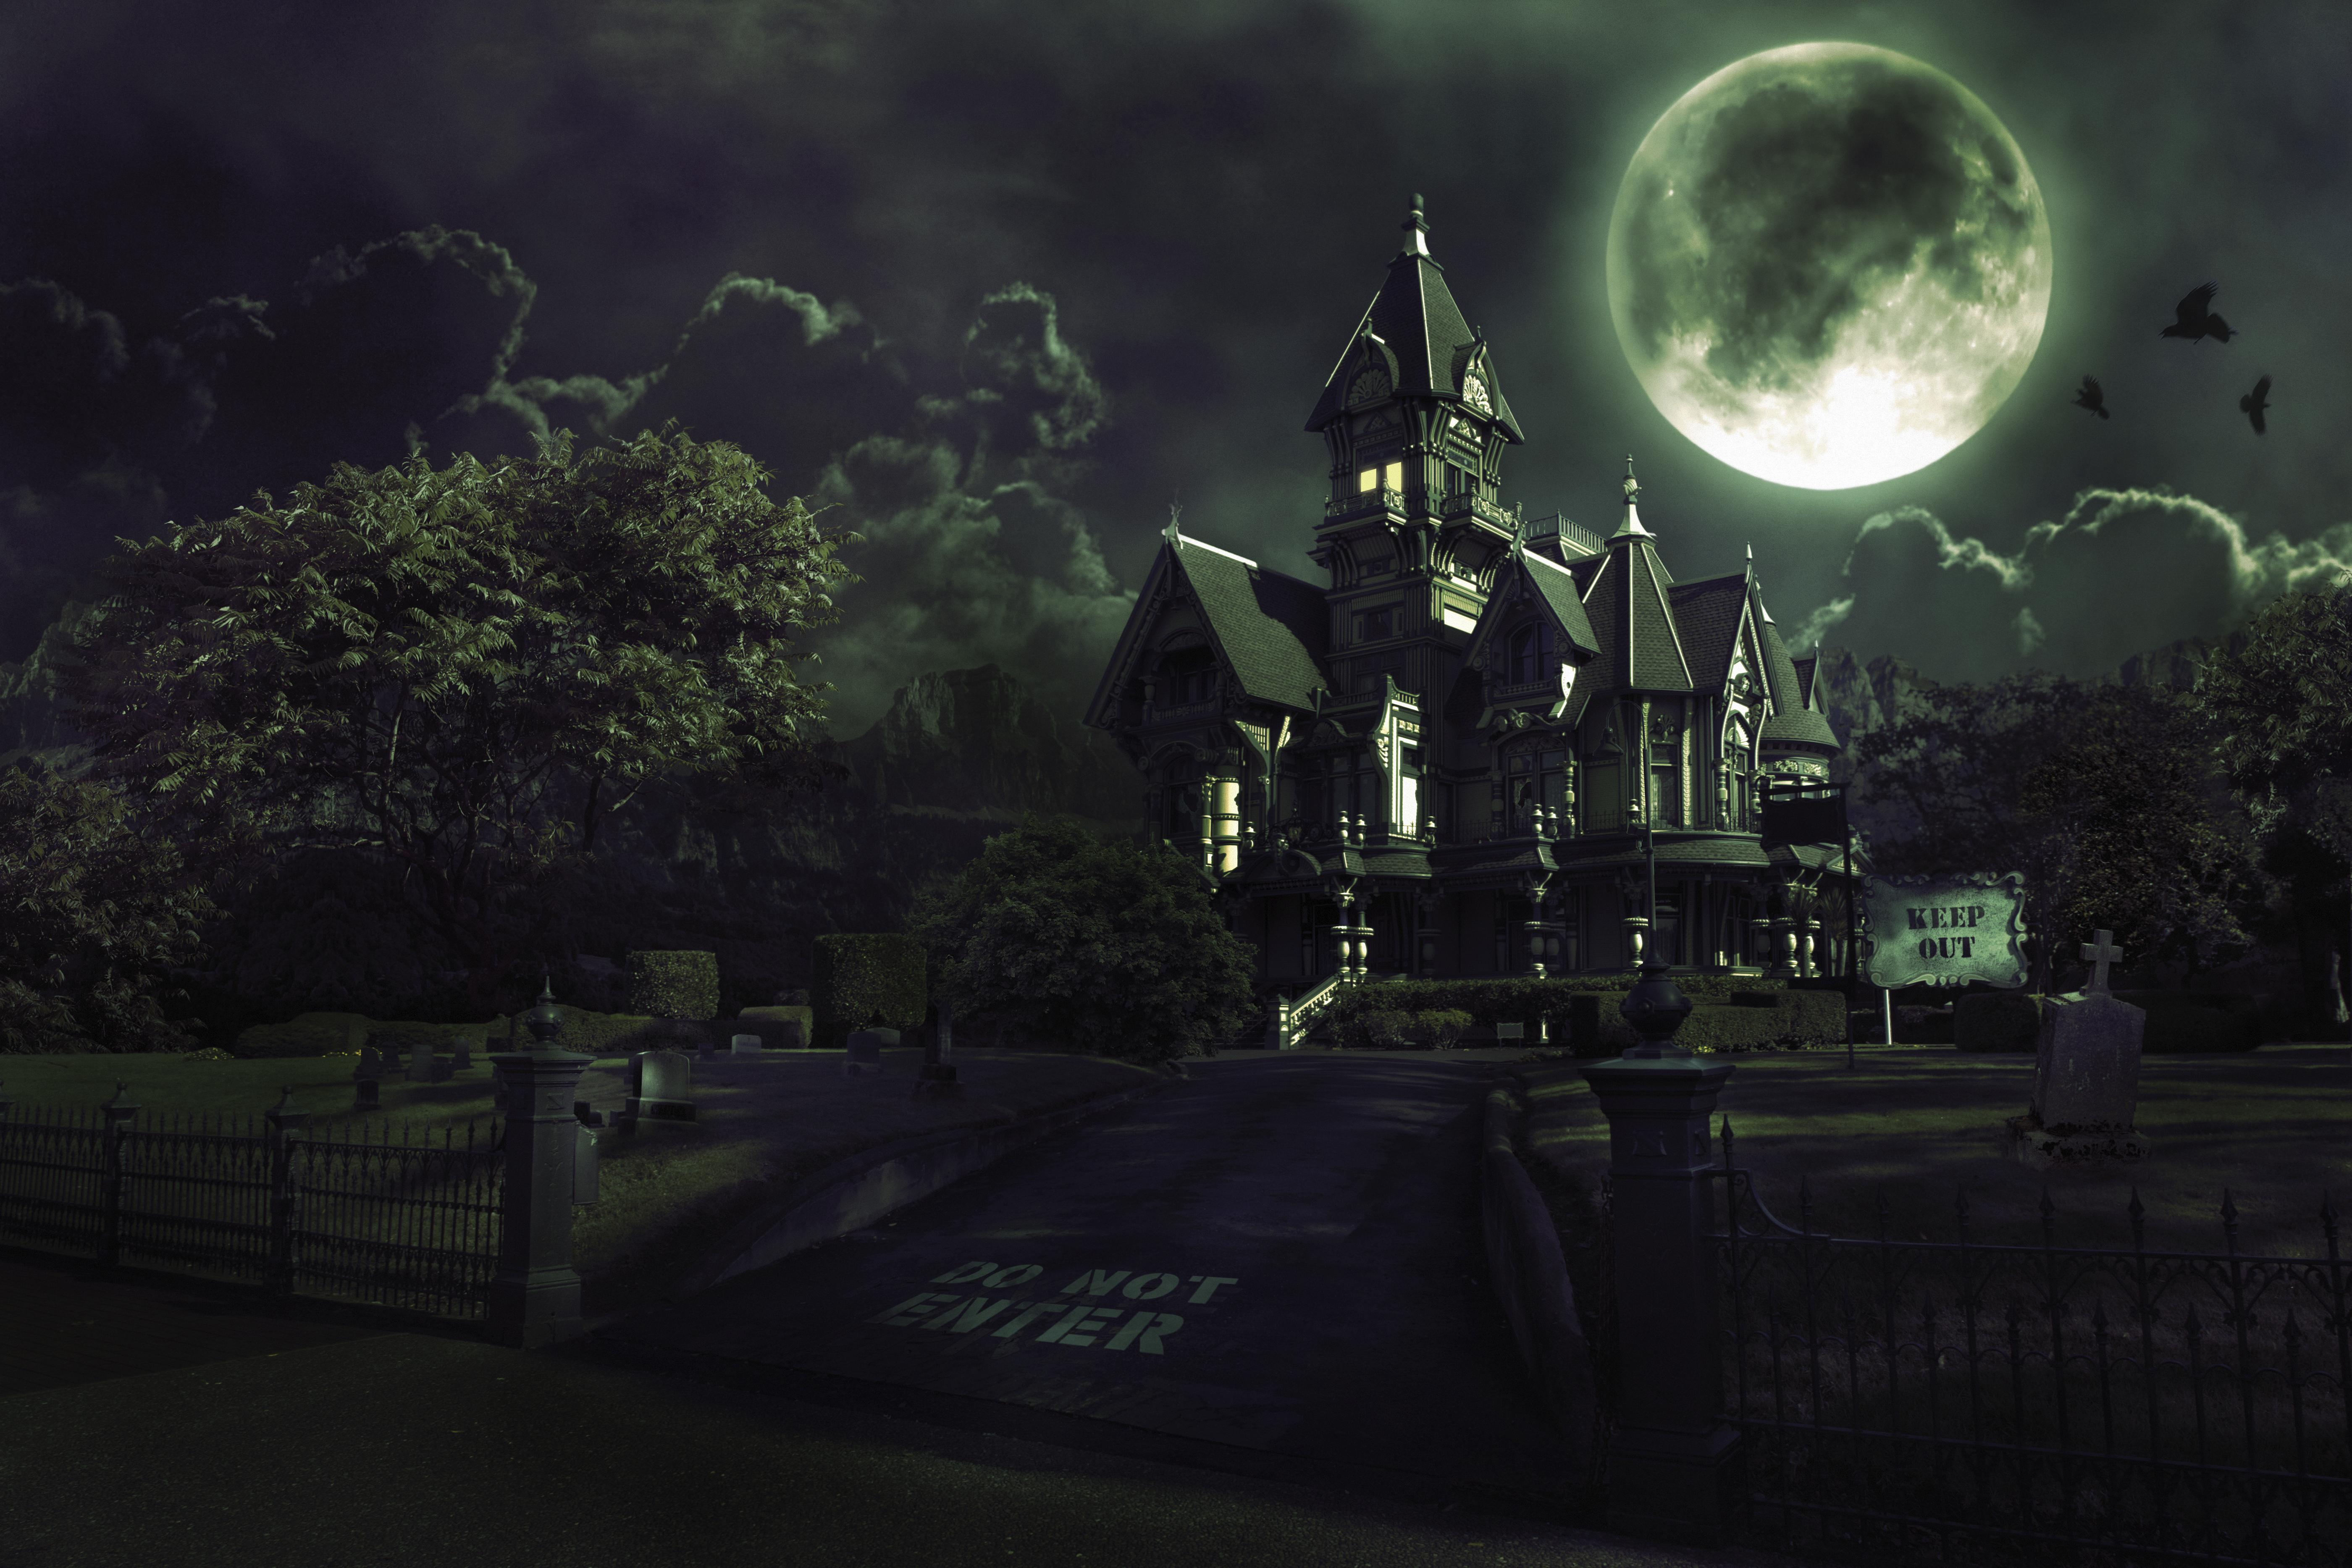 Full Moon Over Haunted House with Graveyard for Halloween